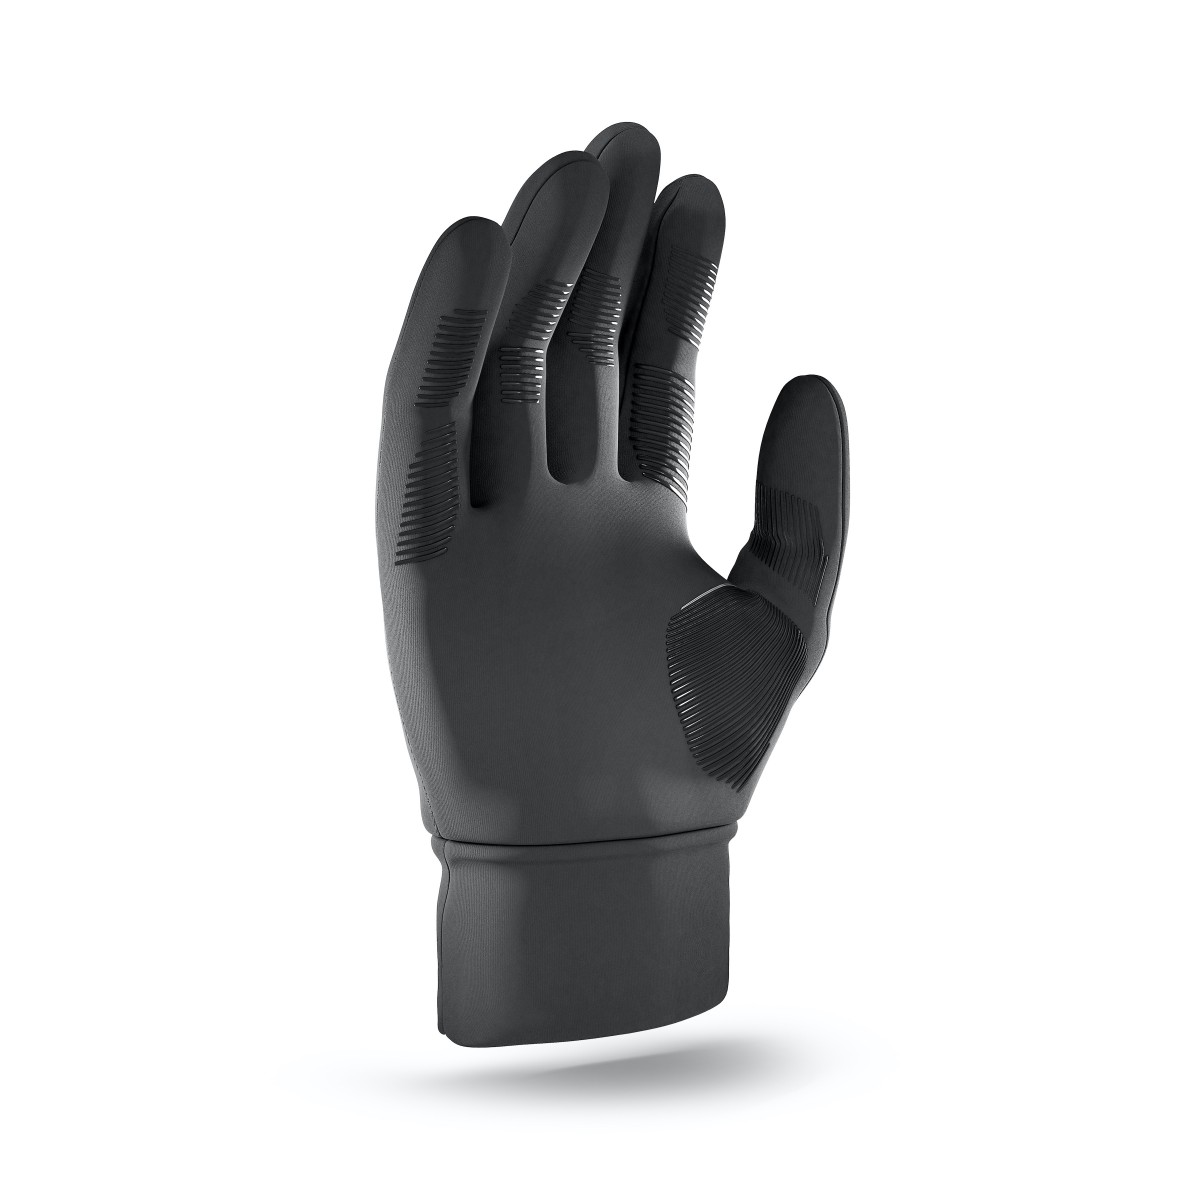 outlet store e2f93 a08c7 All-new Touchscreen Gloves